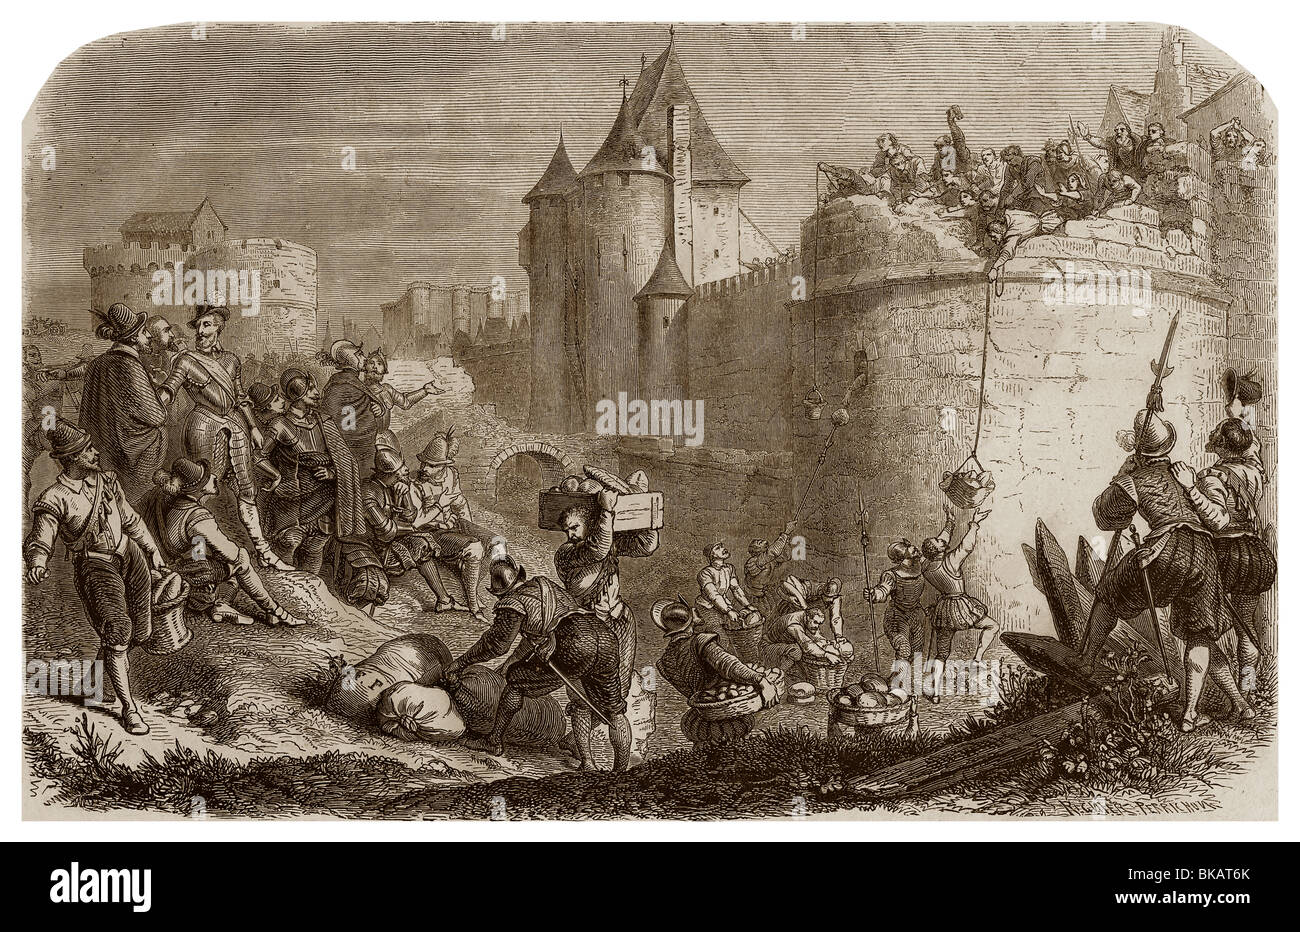 In 1590, during the siege of Paris, King Henry IV of France made release  some peasants and distributed them some money.